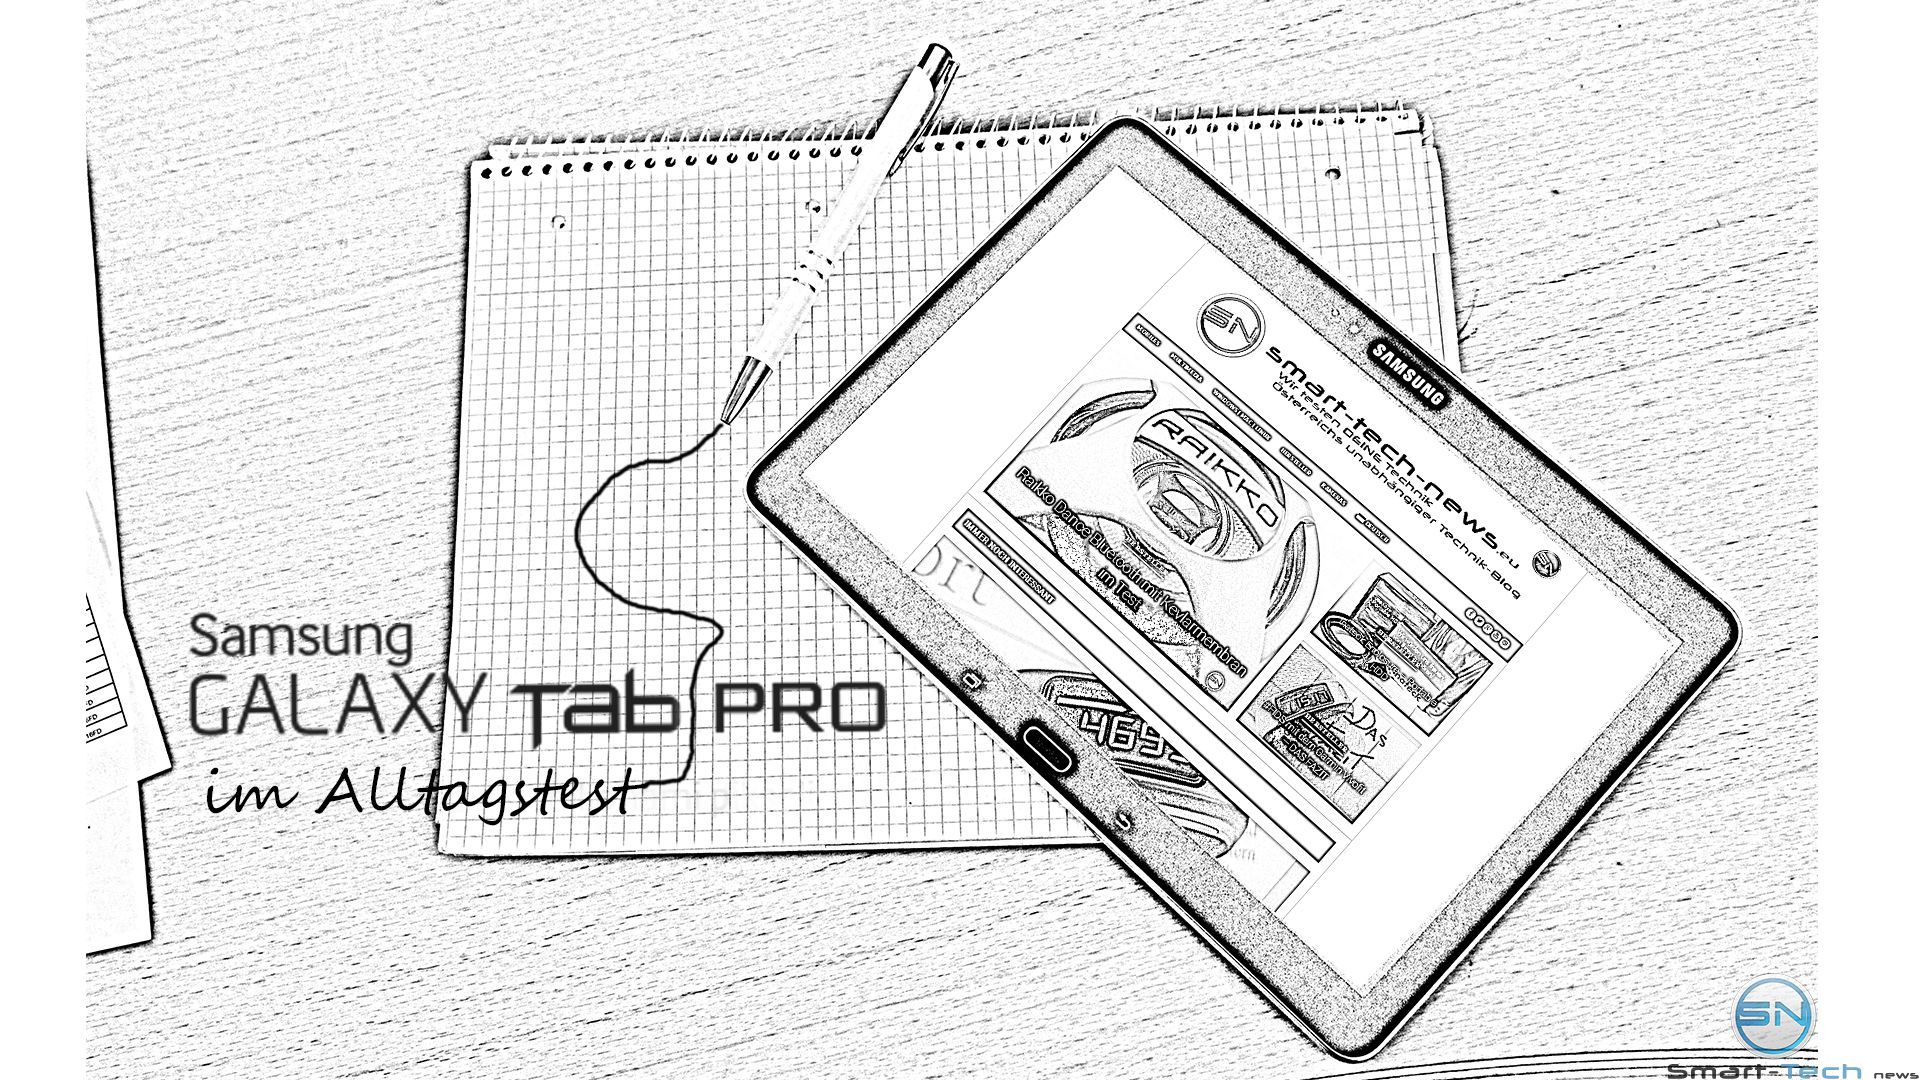 Samsung Galaxy Tab Pro (SM-T520) im Alltags-Office Test